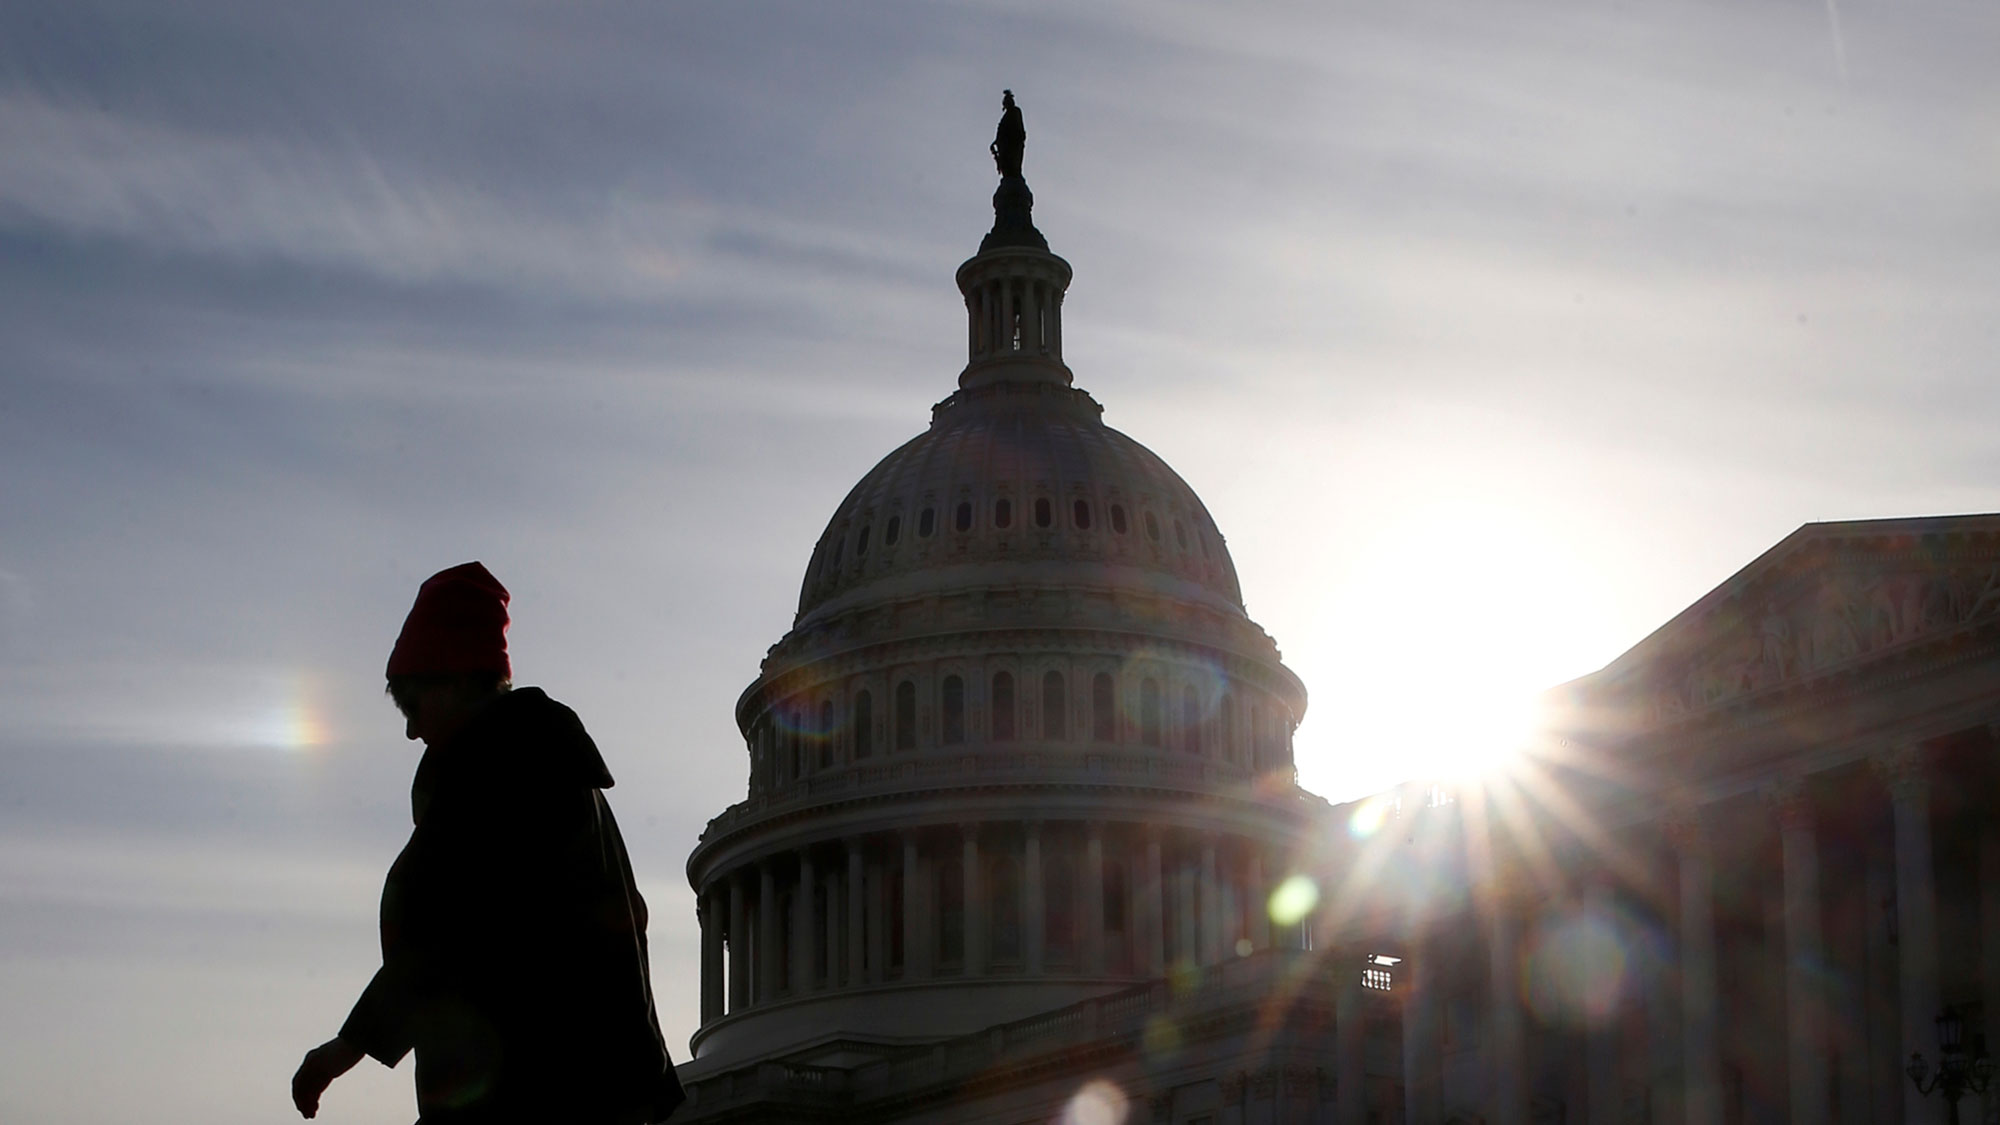 A person is shown in shadow, backlight by a bright sun walking by the US Capitol.